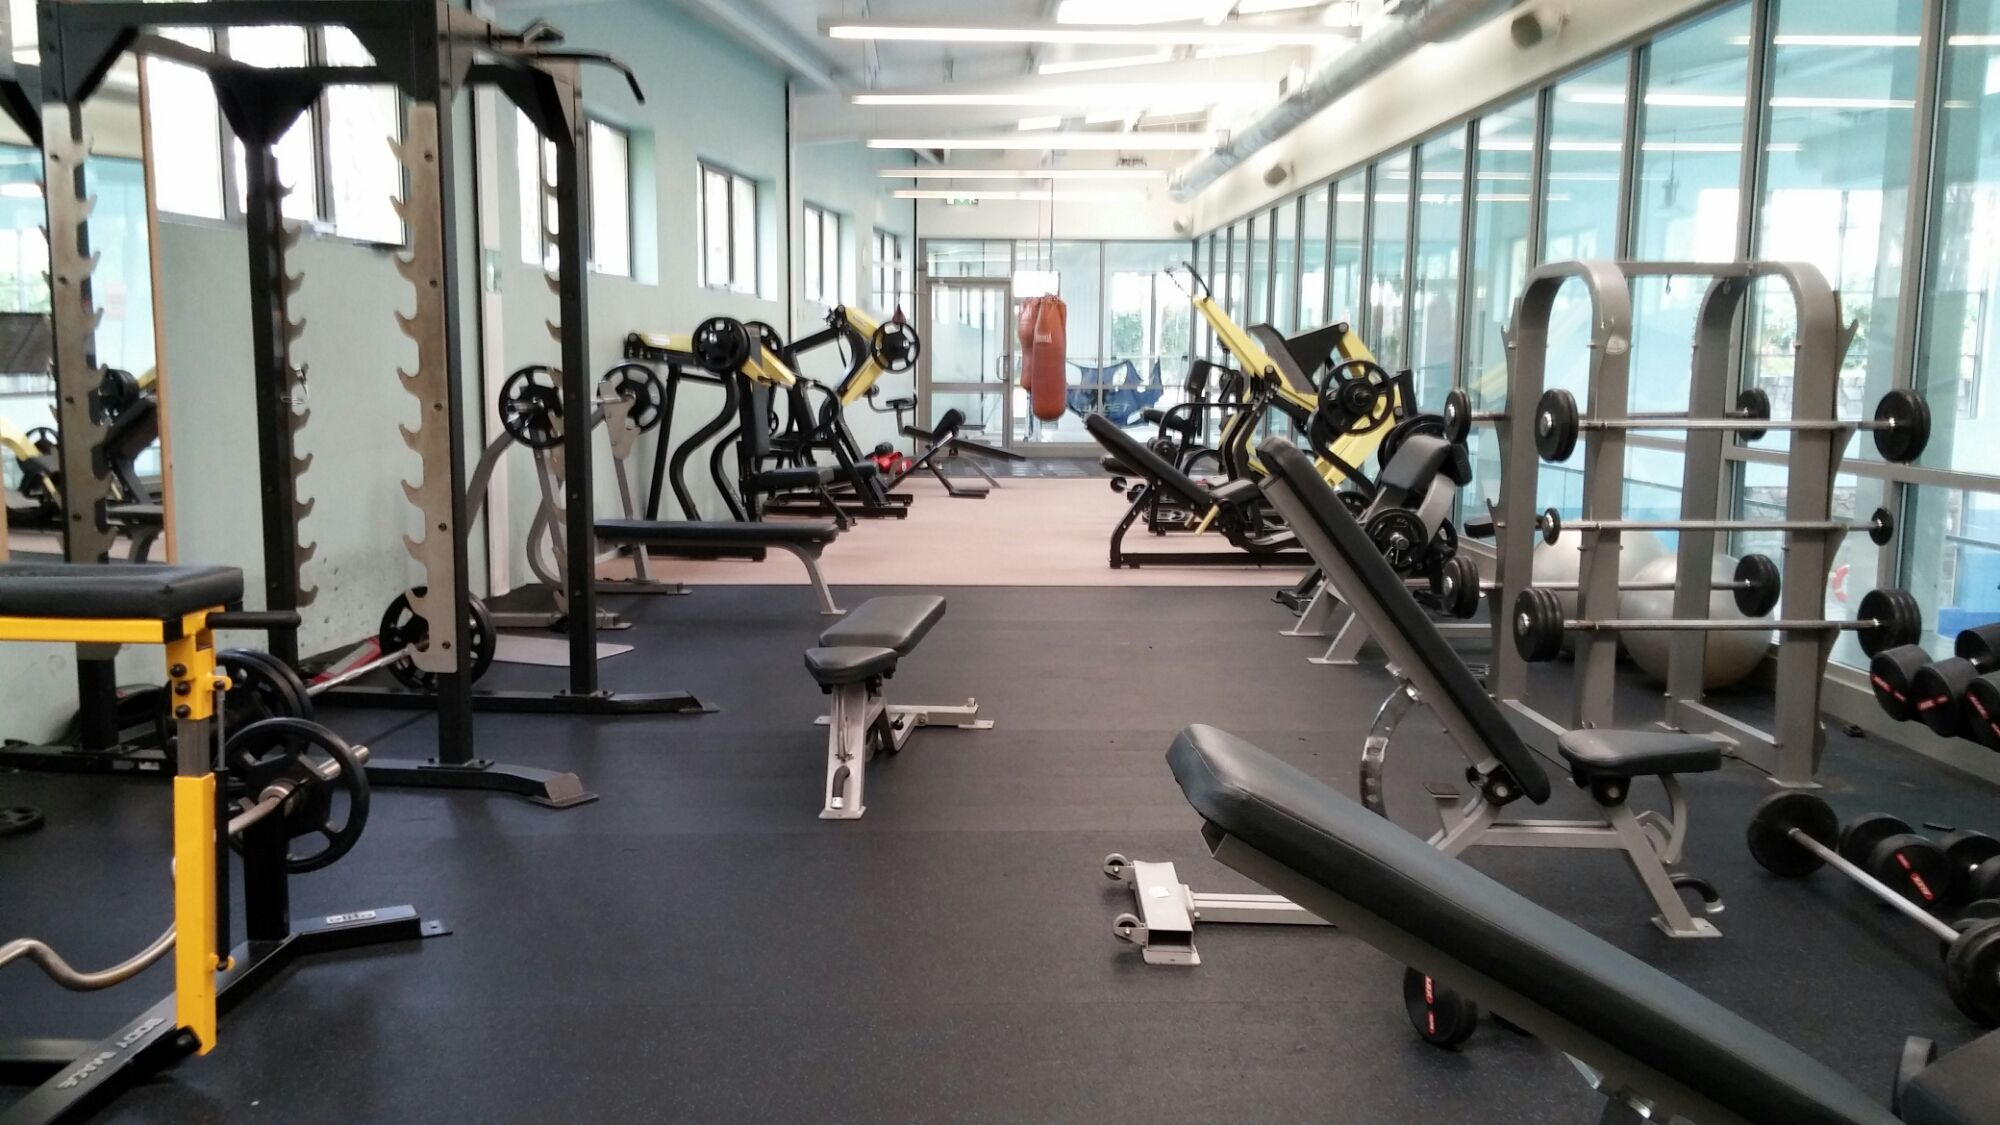 Health is wealth, gym owners demand a second look